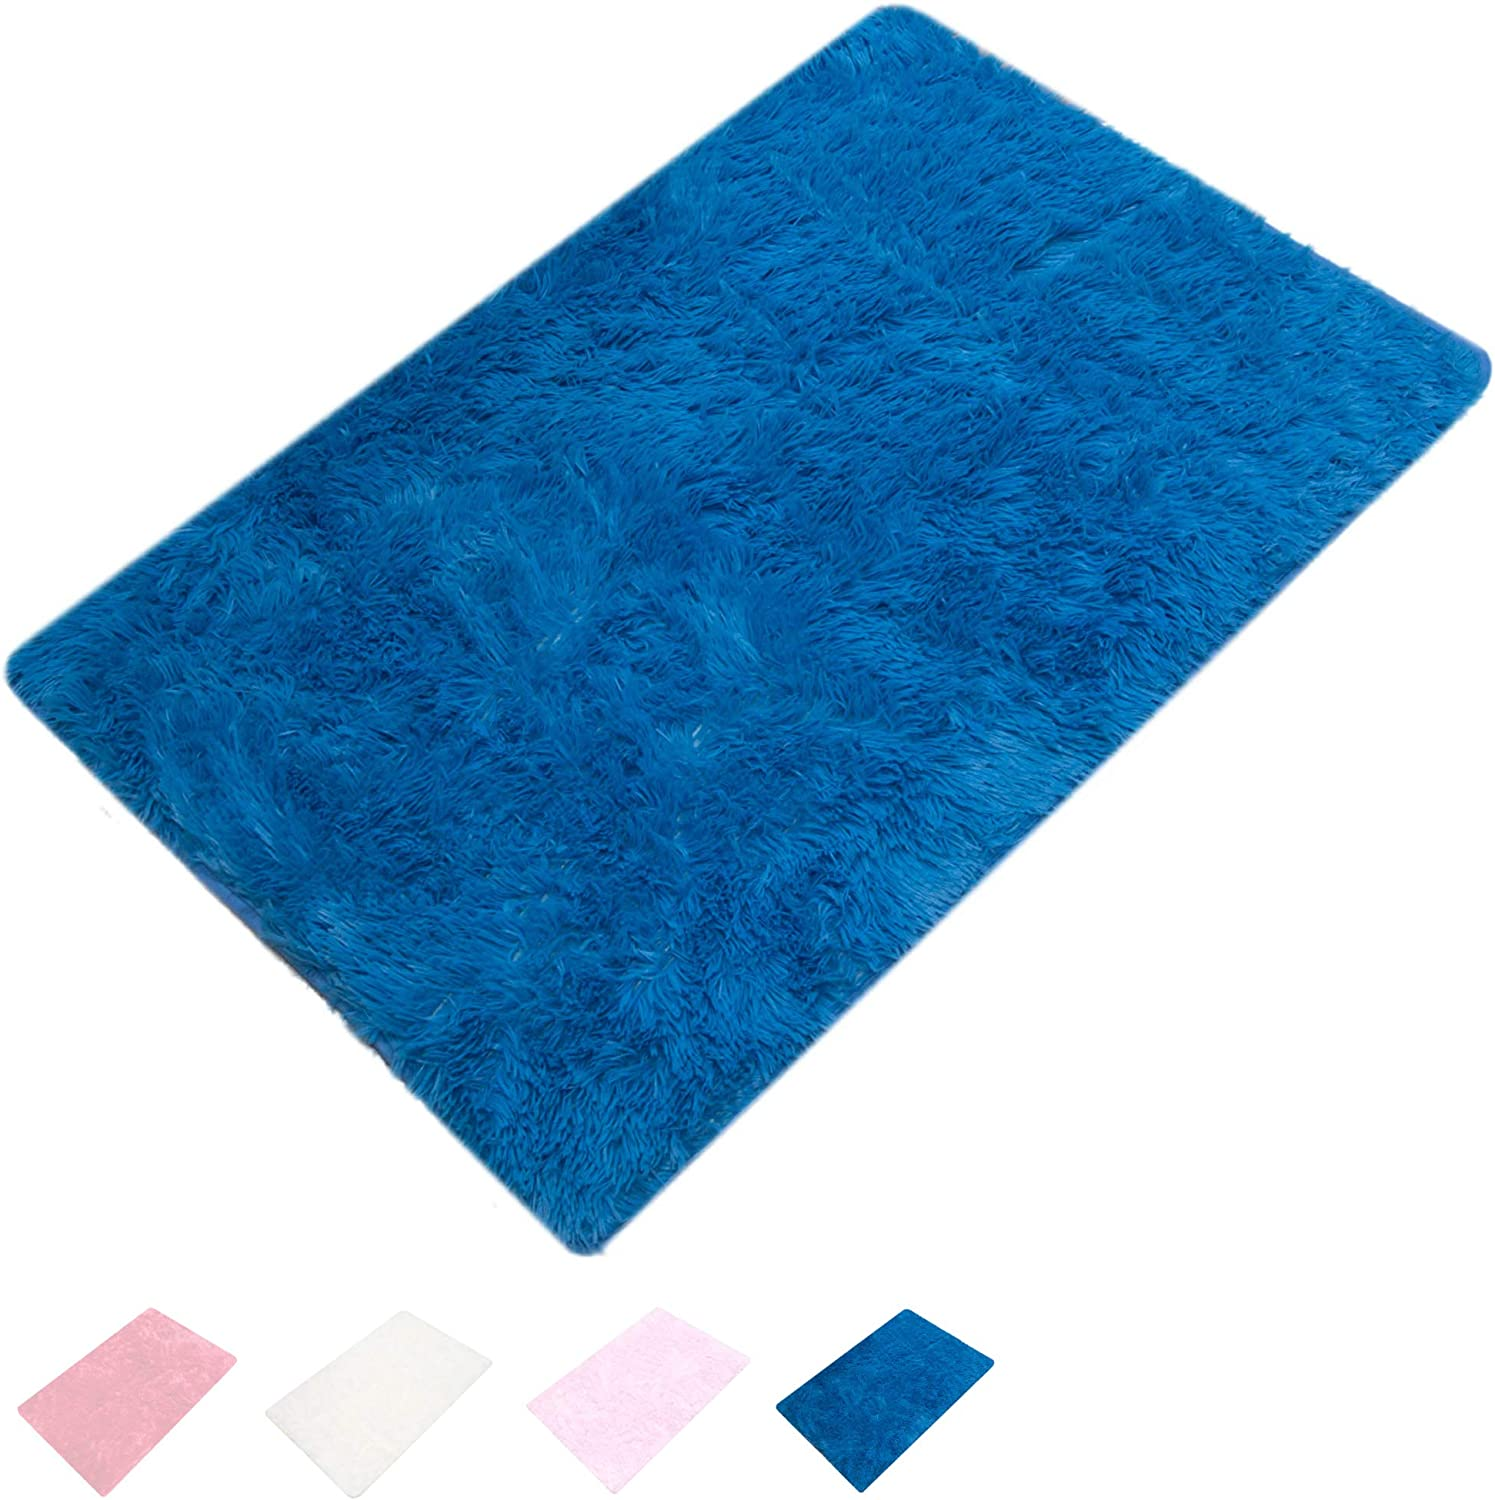 ORGRIMMAR Ultra Soft Indoor Modern Carpet Silky Smooth Rugs Living Room Area Rugs Suitable for Children Play Home Decorator Floor Bedroom Carpet 2 Feet by 3 Feet(Blue)